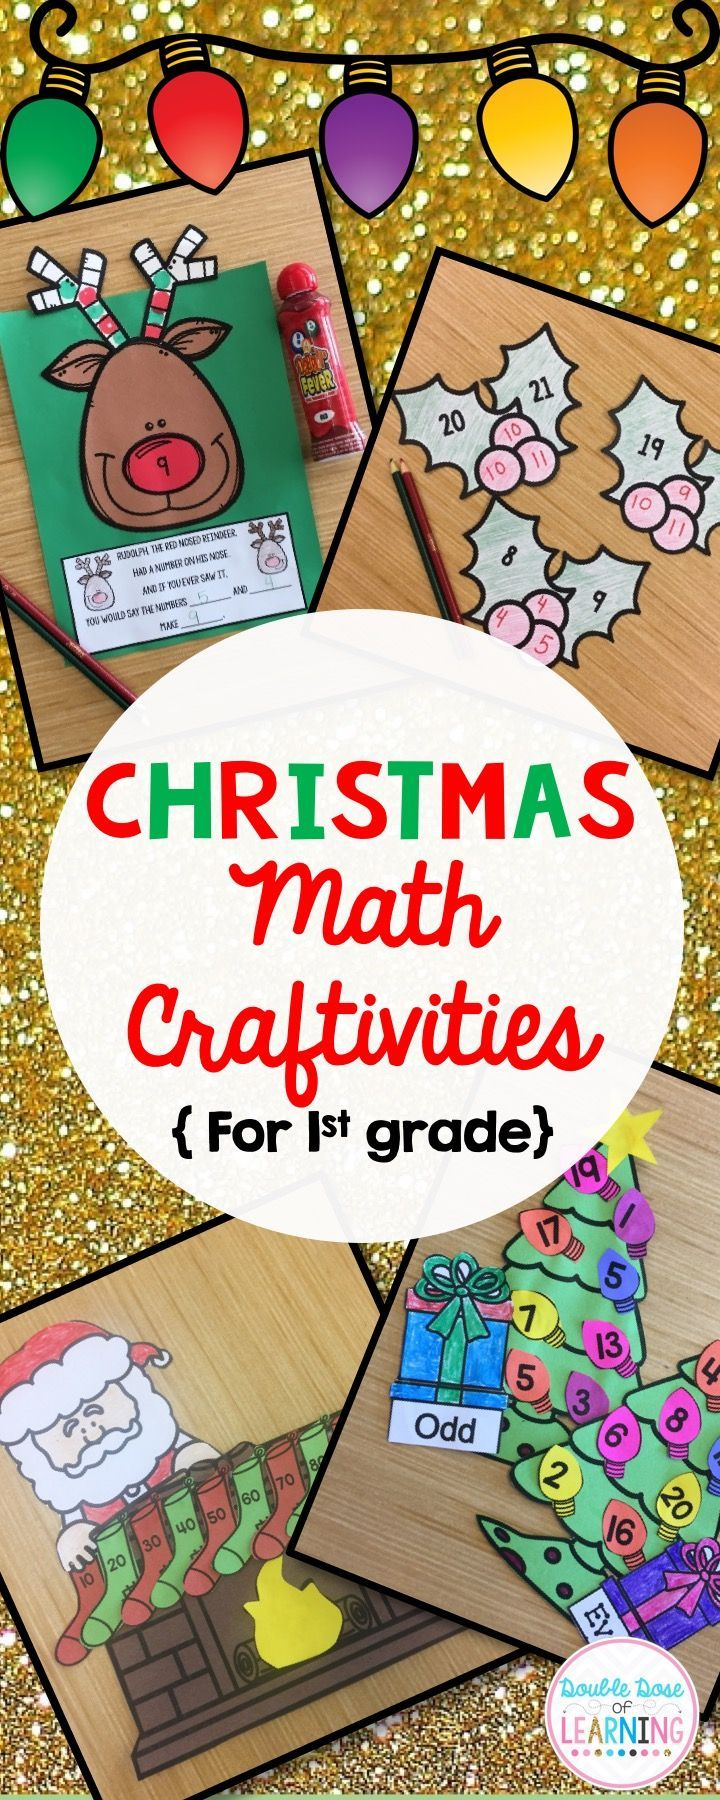 Challenge students this holiday season by incorporating interactive seasonal extensions to your lesson with craftivities or math art. You will find all you need for 4 different easy-to-prep craftivities which will make the perfect Christmas hallway or bulletin board display! Ways to Make Ten, Skip counting by 2's, 3's, 5's and 10's, Even and Odd numbers, and Addition are the concepts you will find within this resource which are aligned to the common core standards for first grade